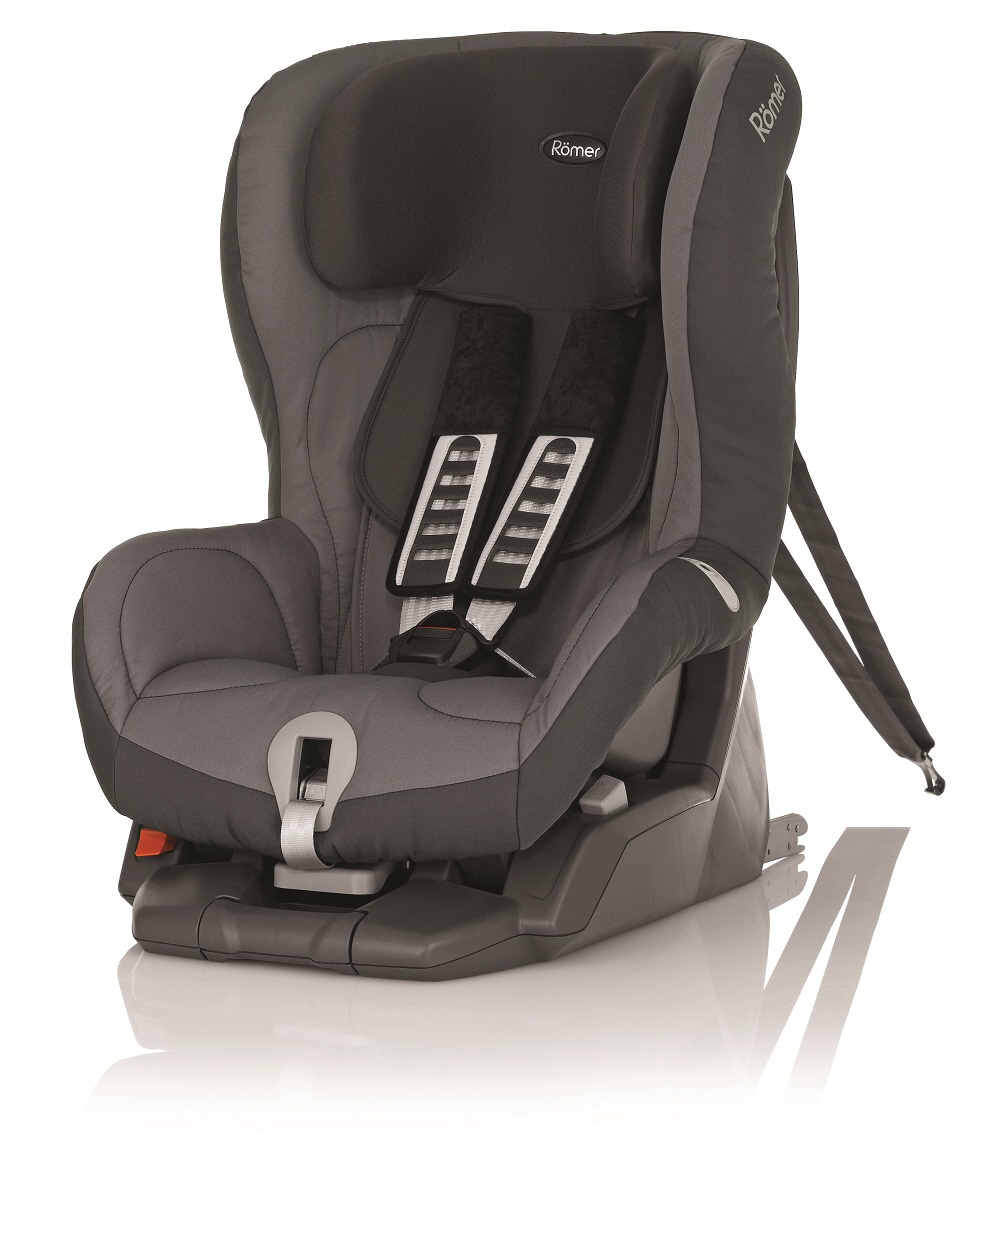 r mer child car seat safefix plus tt 2014 stone grey buy at kidsroom. Black Bedroom Furniture Sets. Home Design Ideas